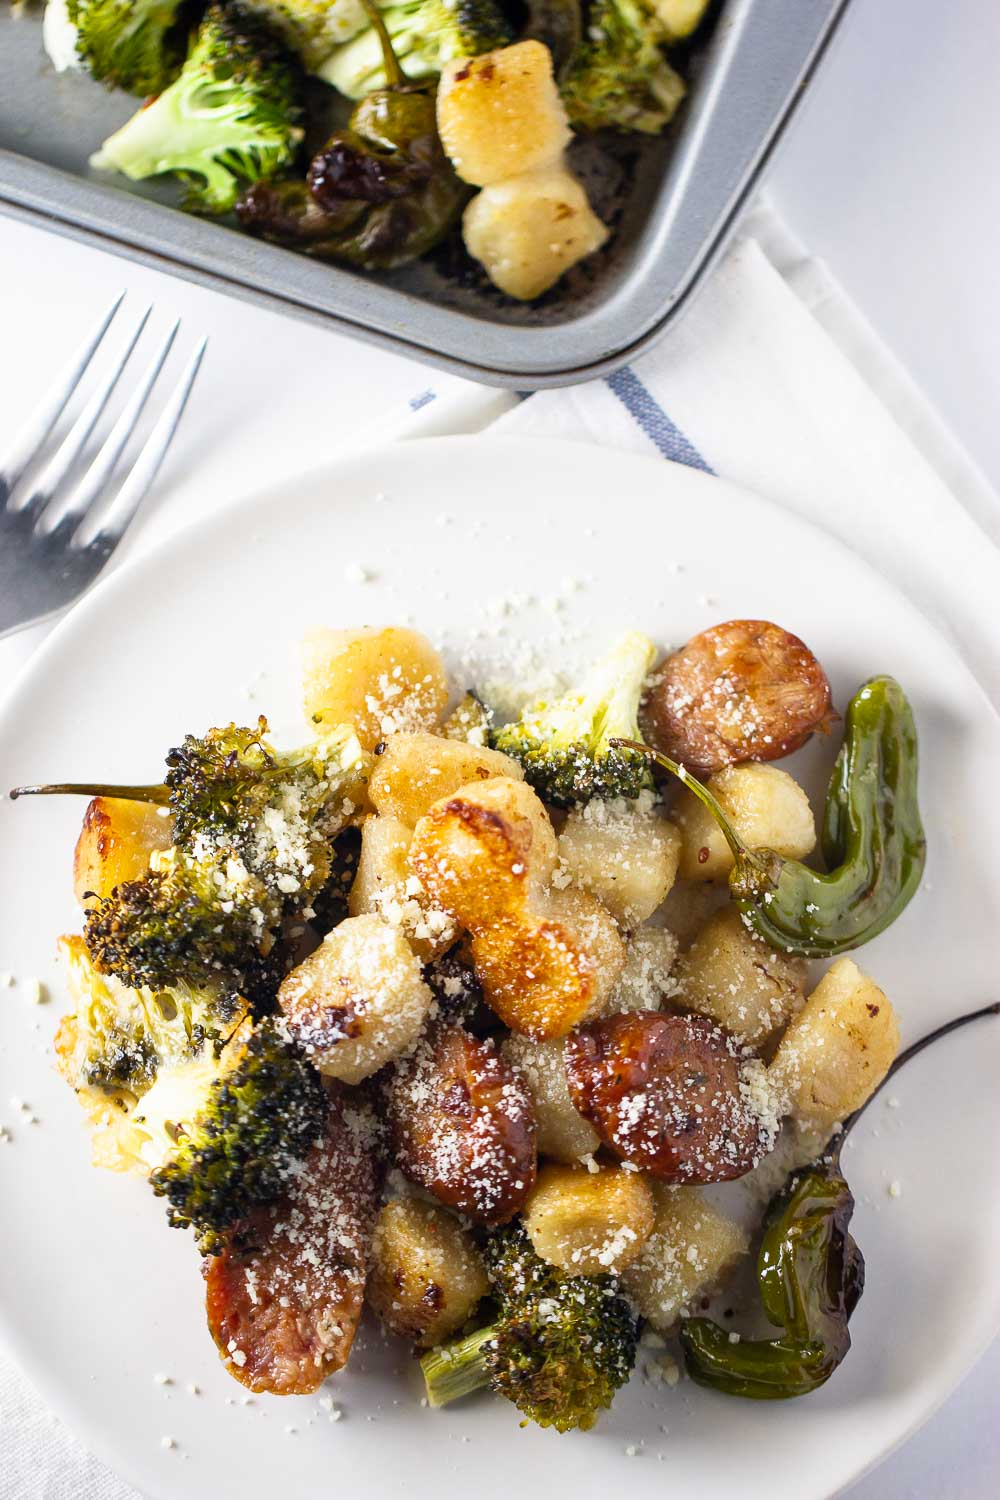 Sheet Pan Cauliflower Gnocchi and Roasted Vegetables. The most easy and crispy trader joe's cauliflower gnocchi made in the oven in just under 30 minutes. A healthy meal that is so easy to throw together!